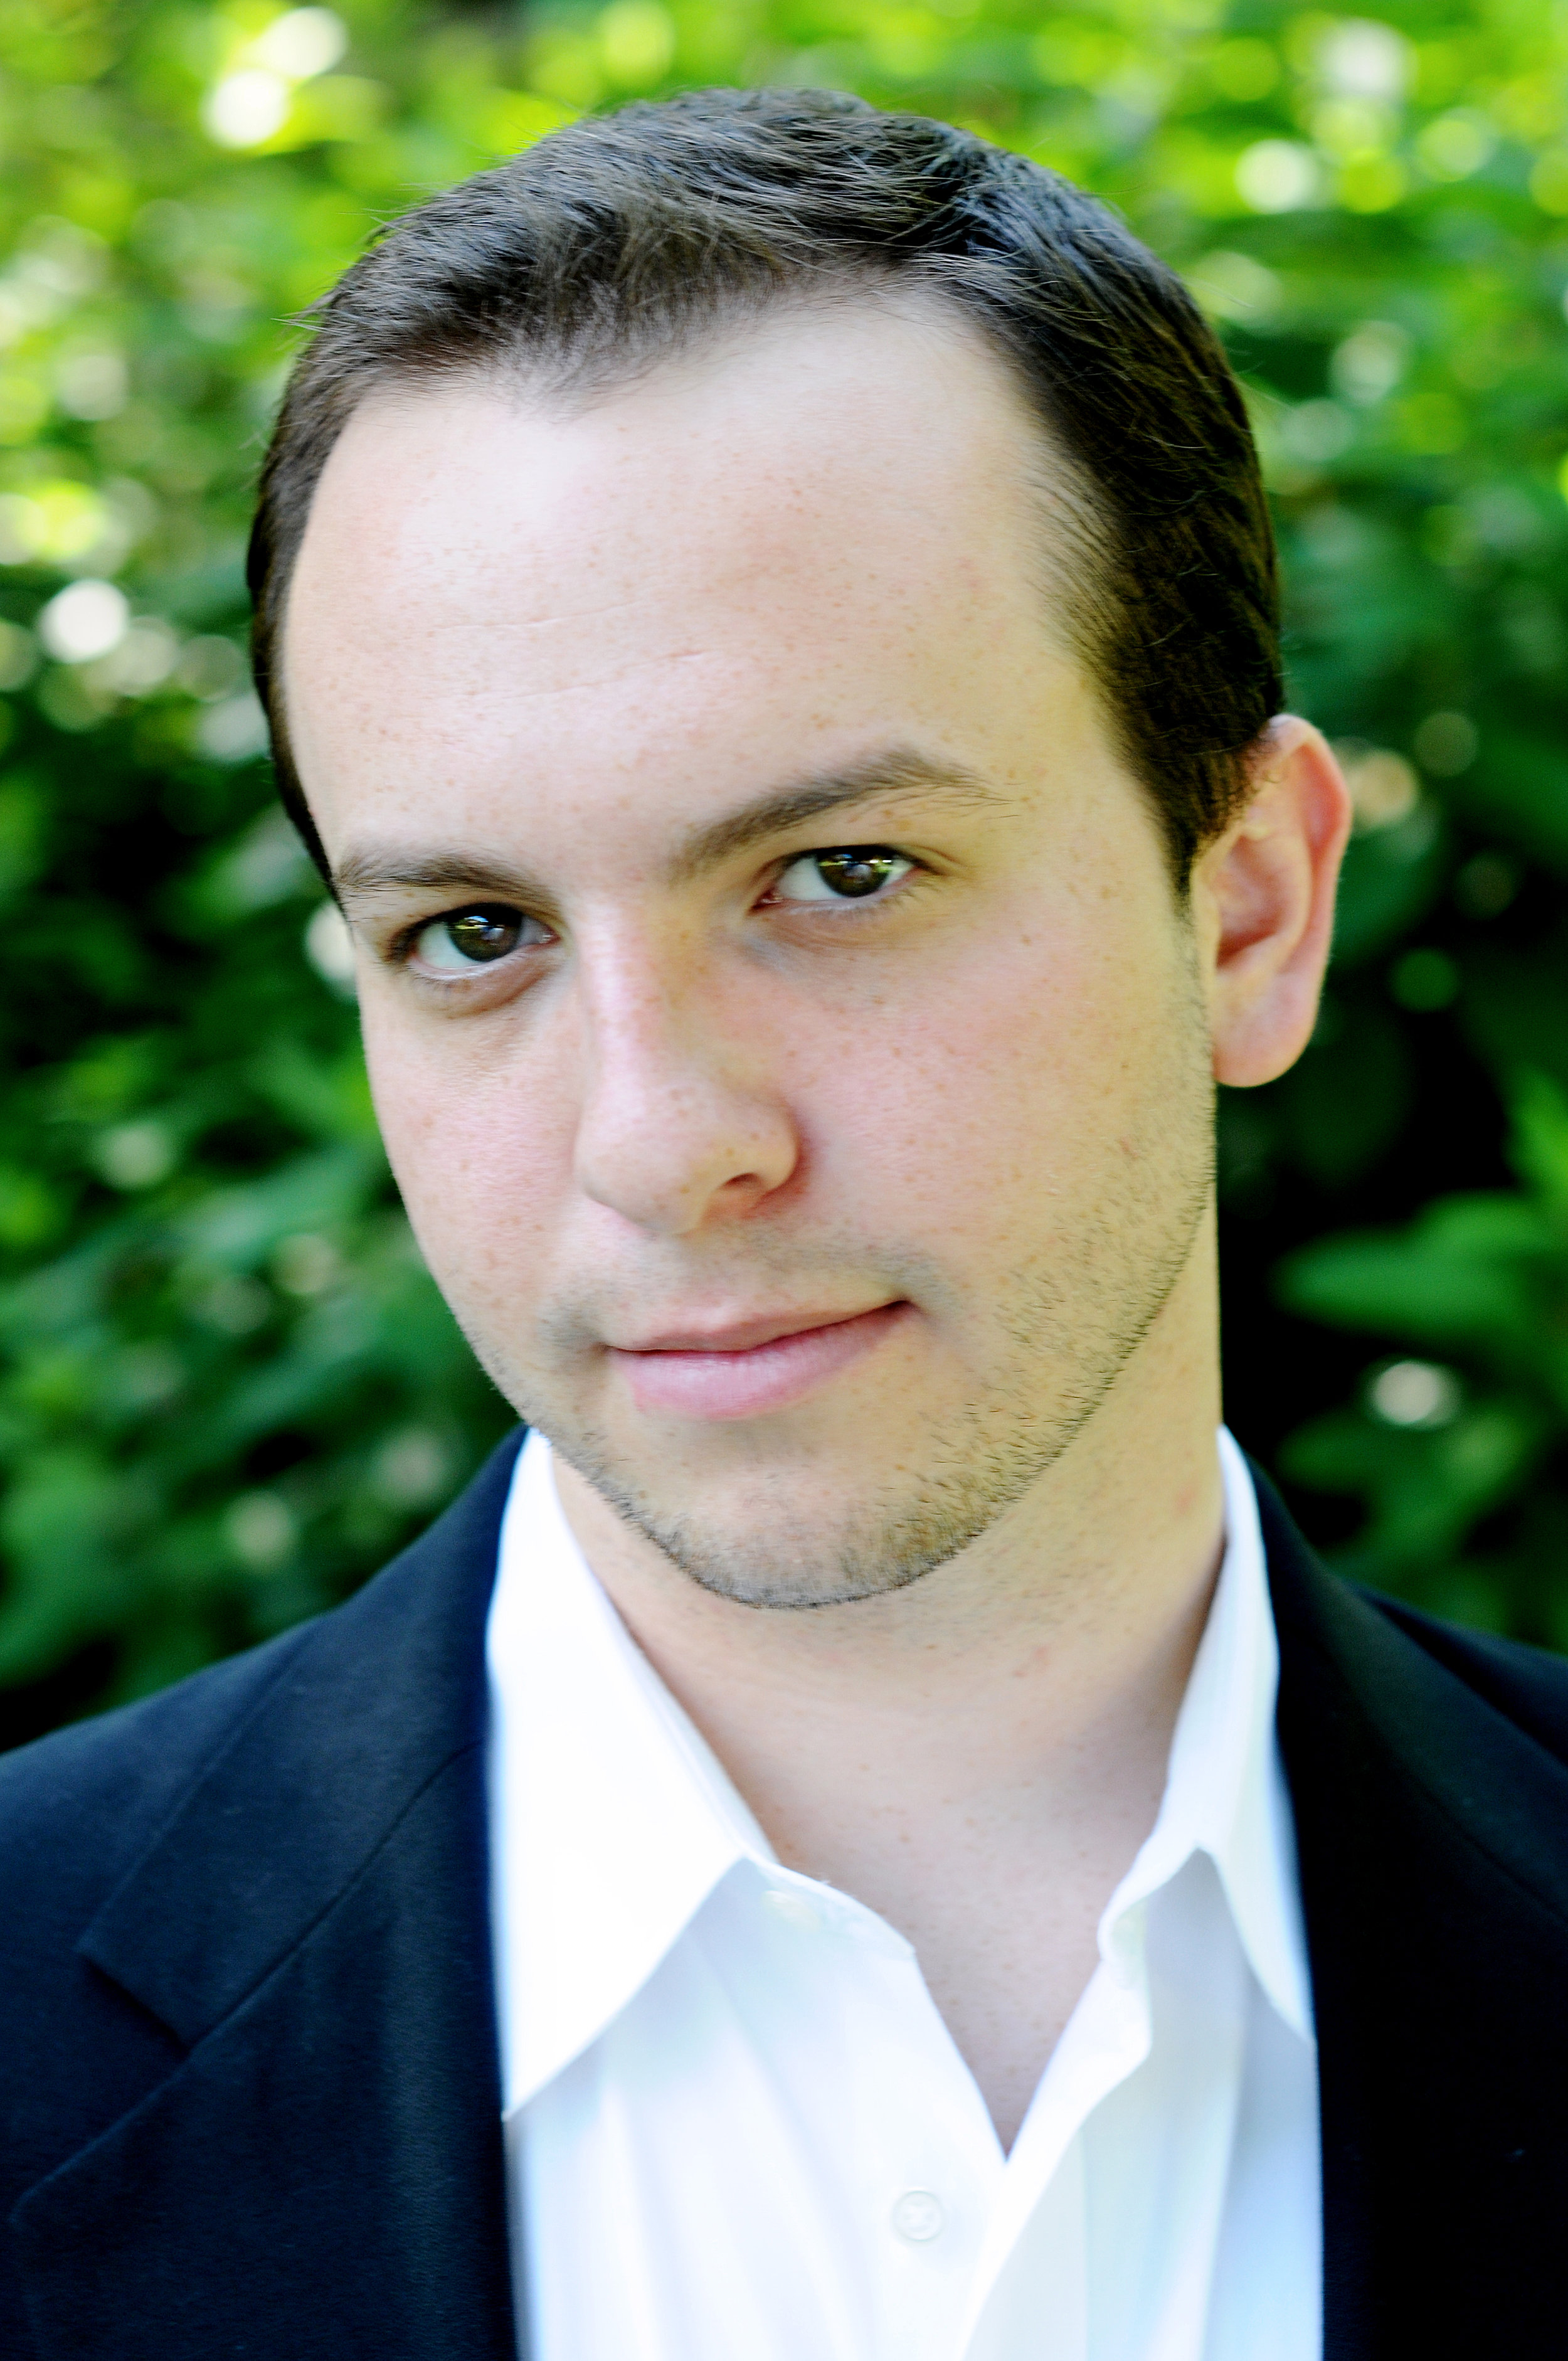 Andrew Miller - American baritone Andrew Miller (Escamillo) is known for his